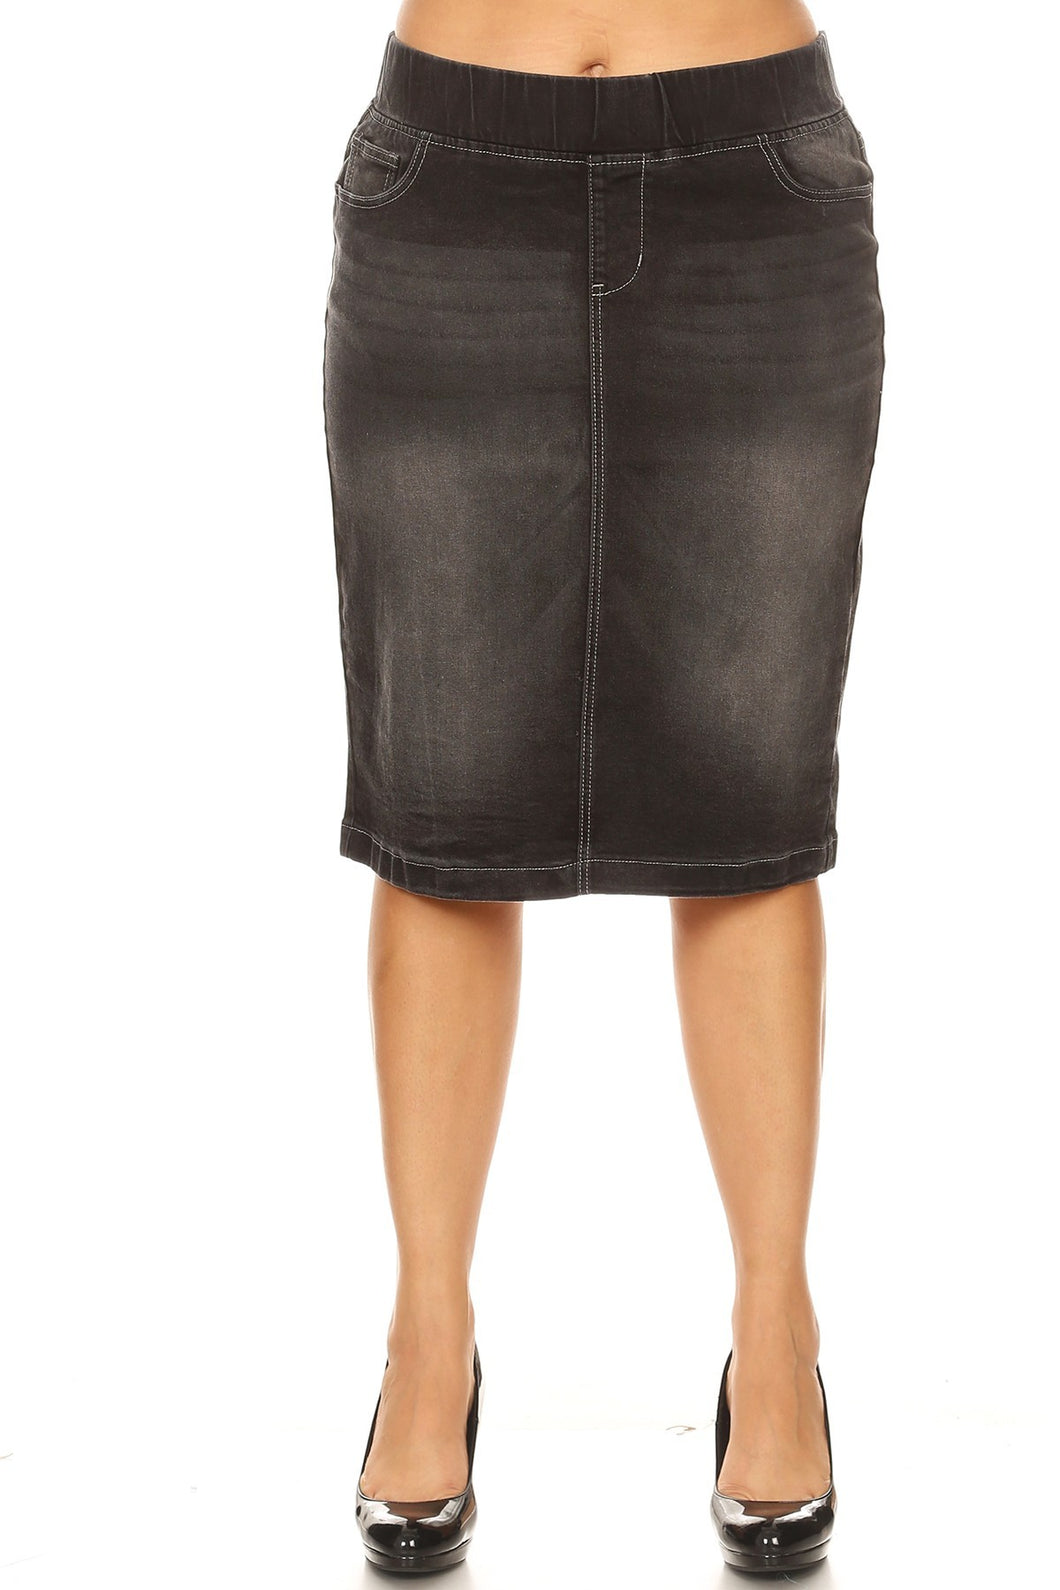 New Color!!  Plus Denim Skirt ~ Ashton ~ Available in Black Wash